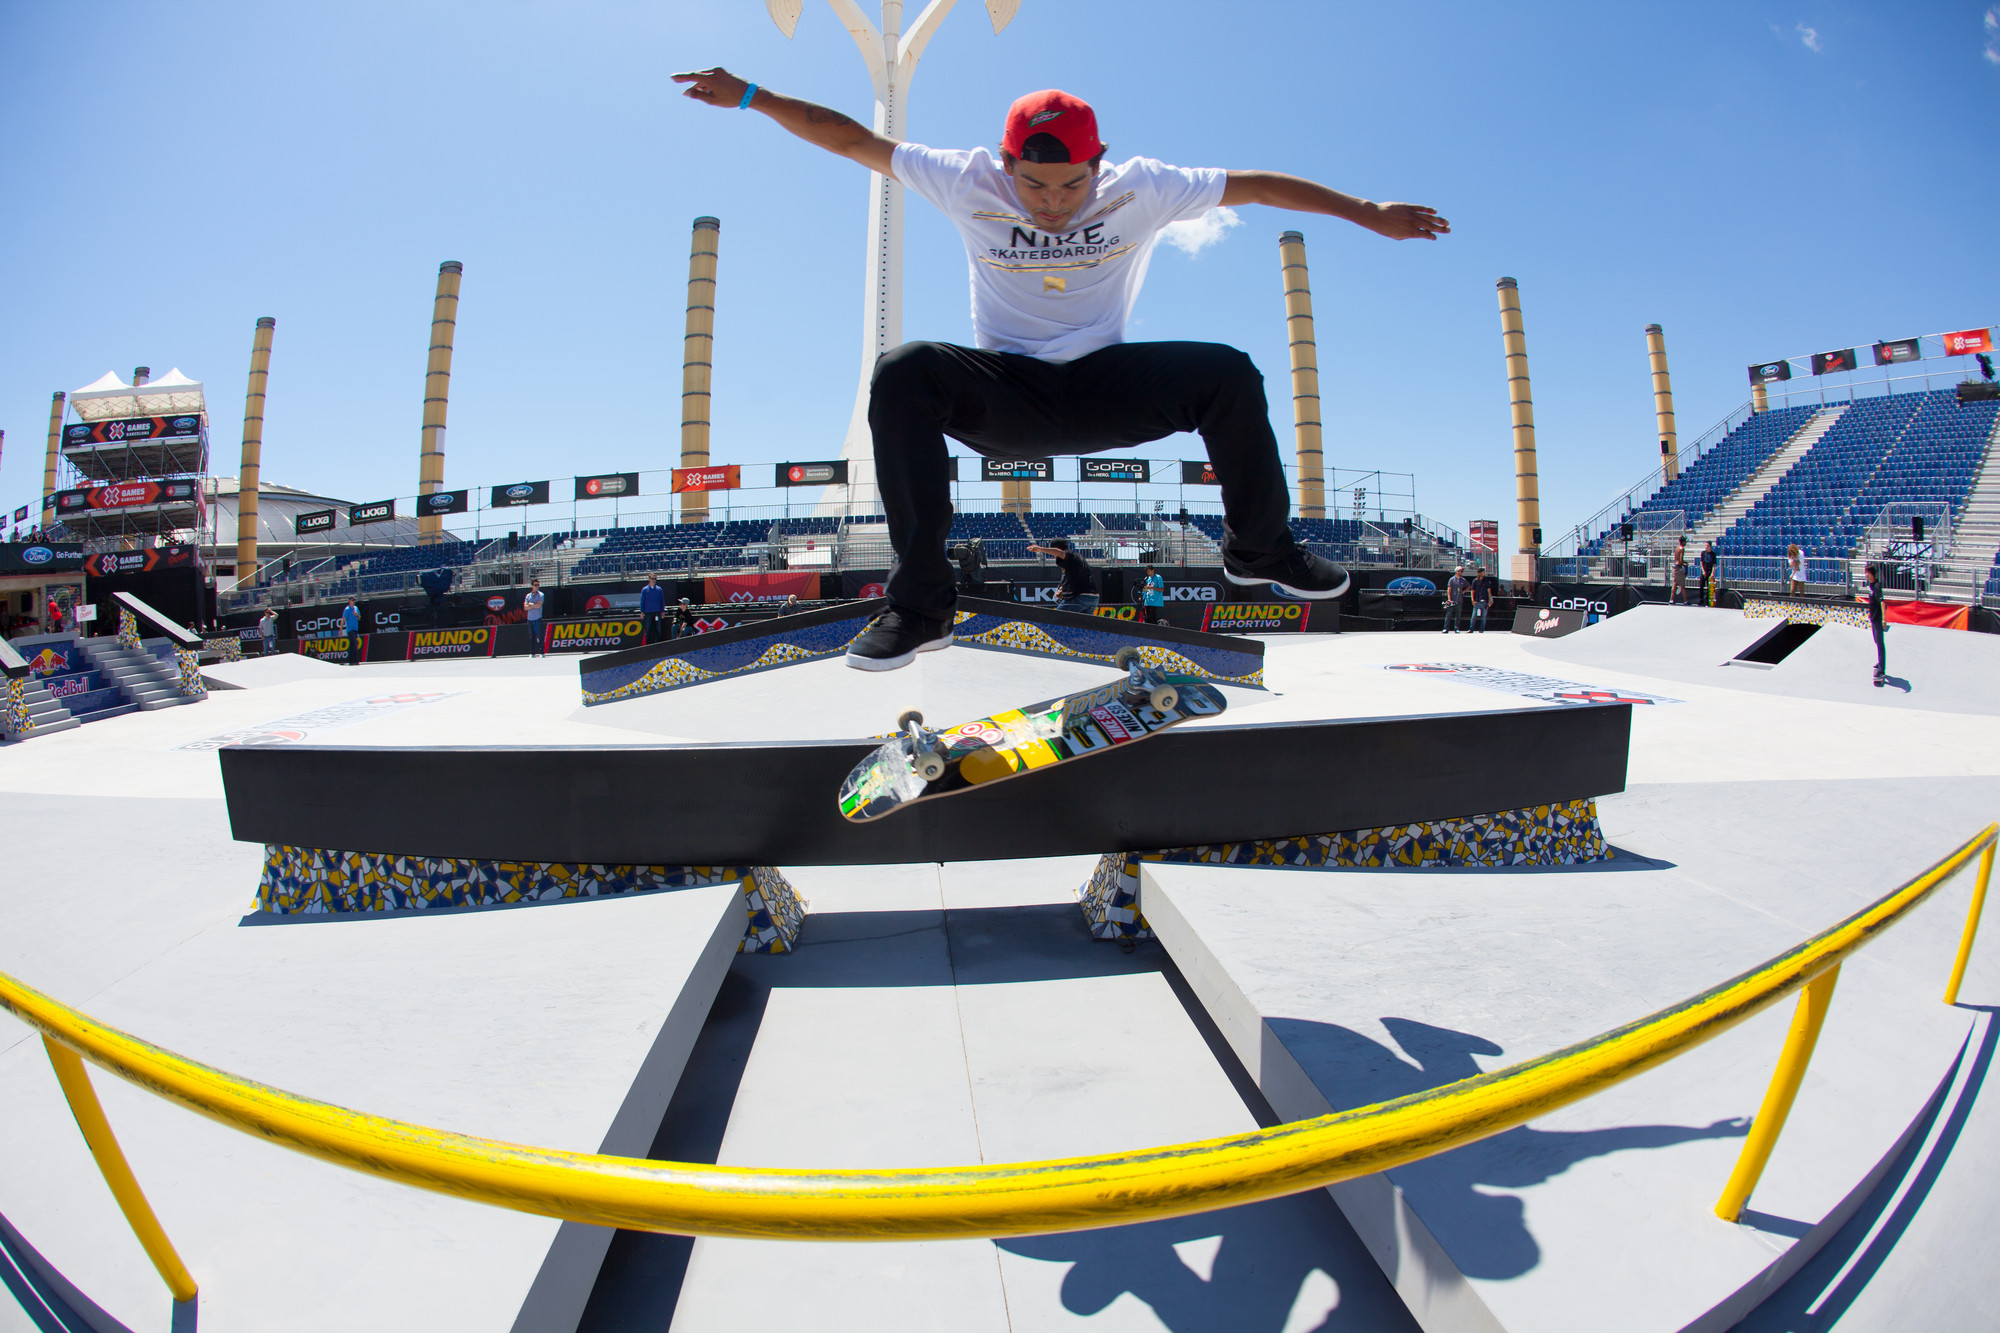 skate chair staples white ceremony chairs top action sports athletes invited to compete at x games